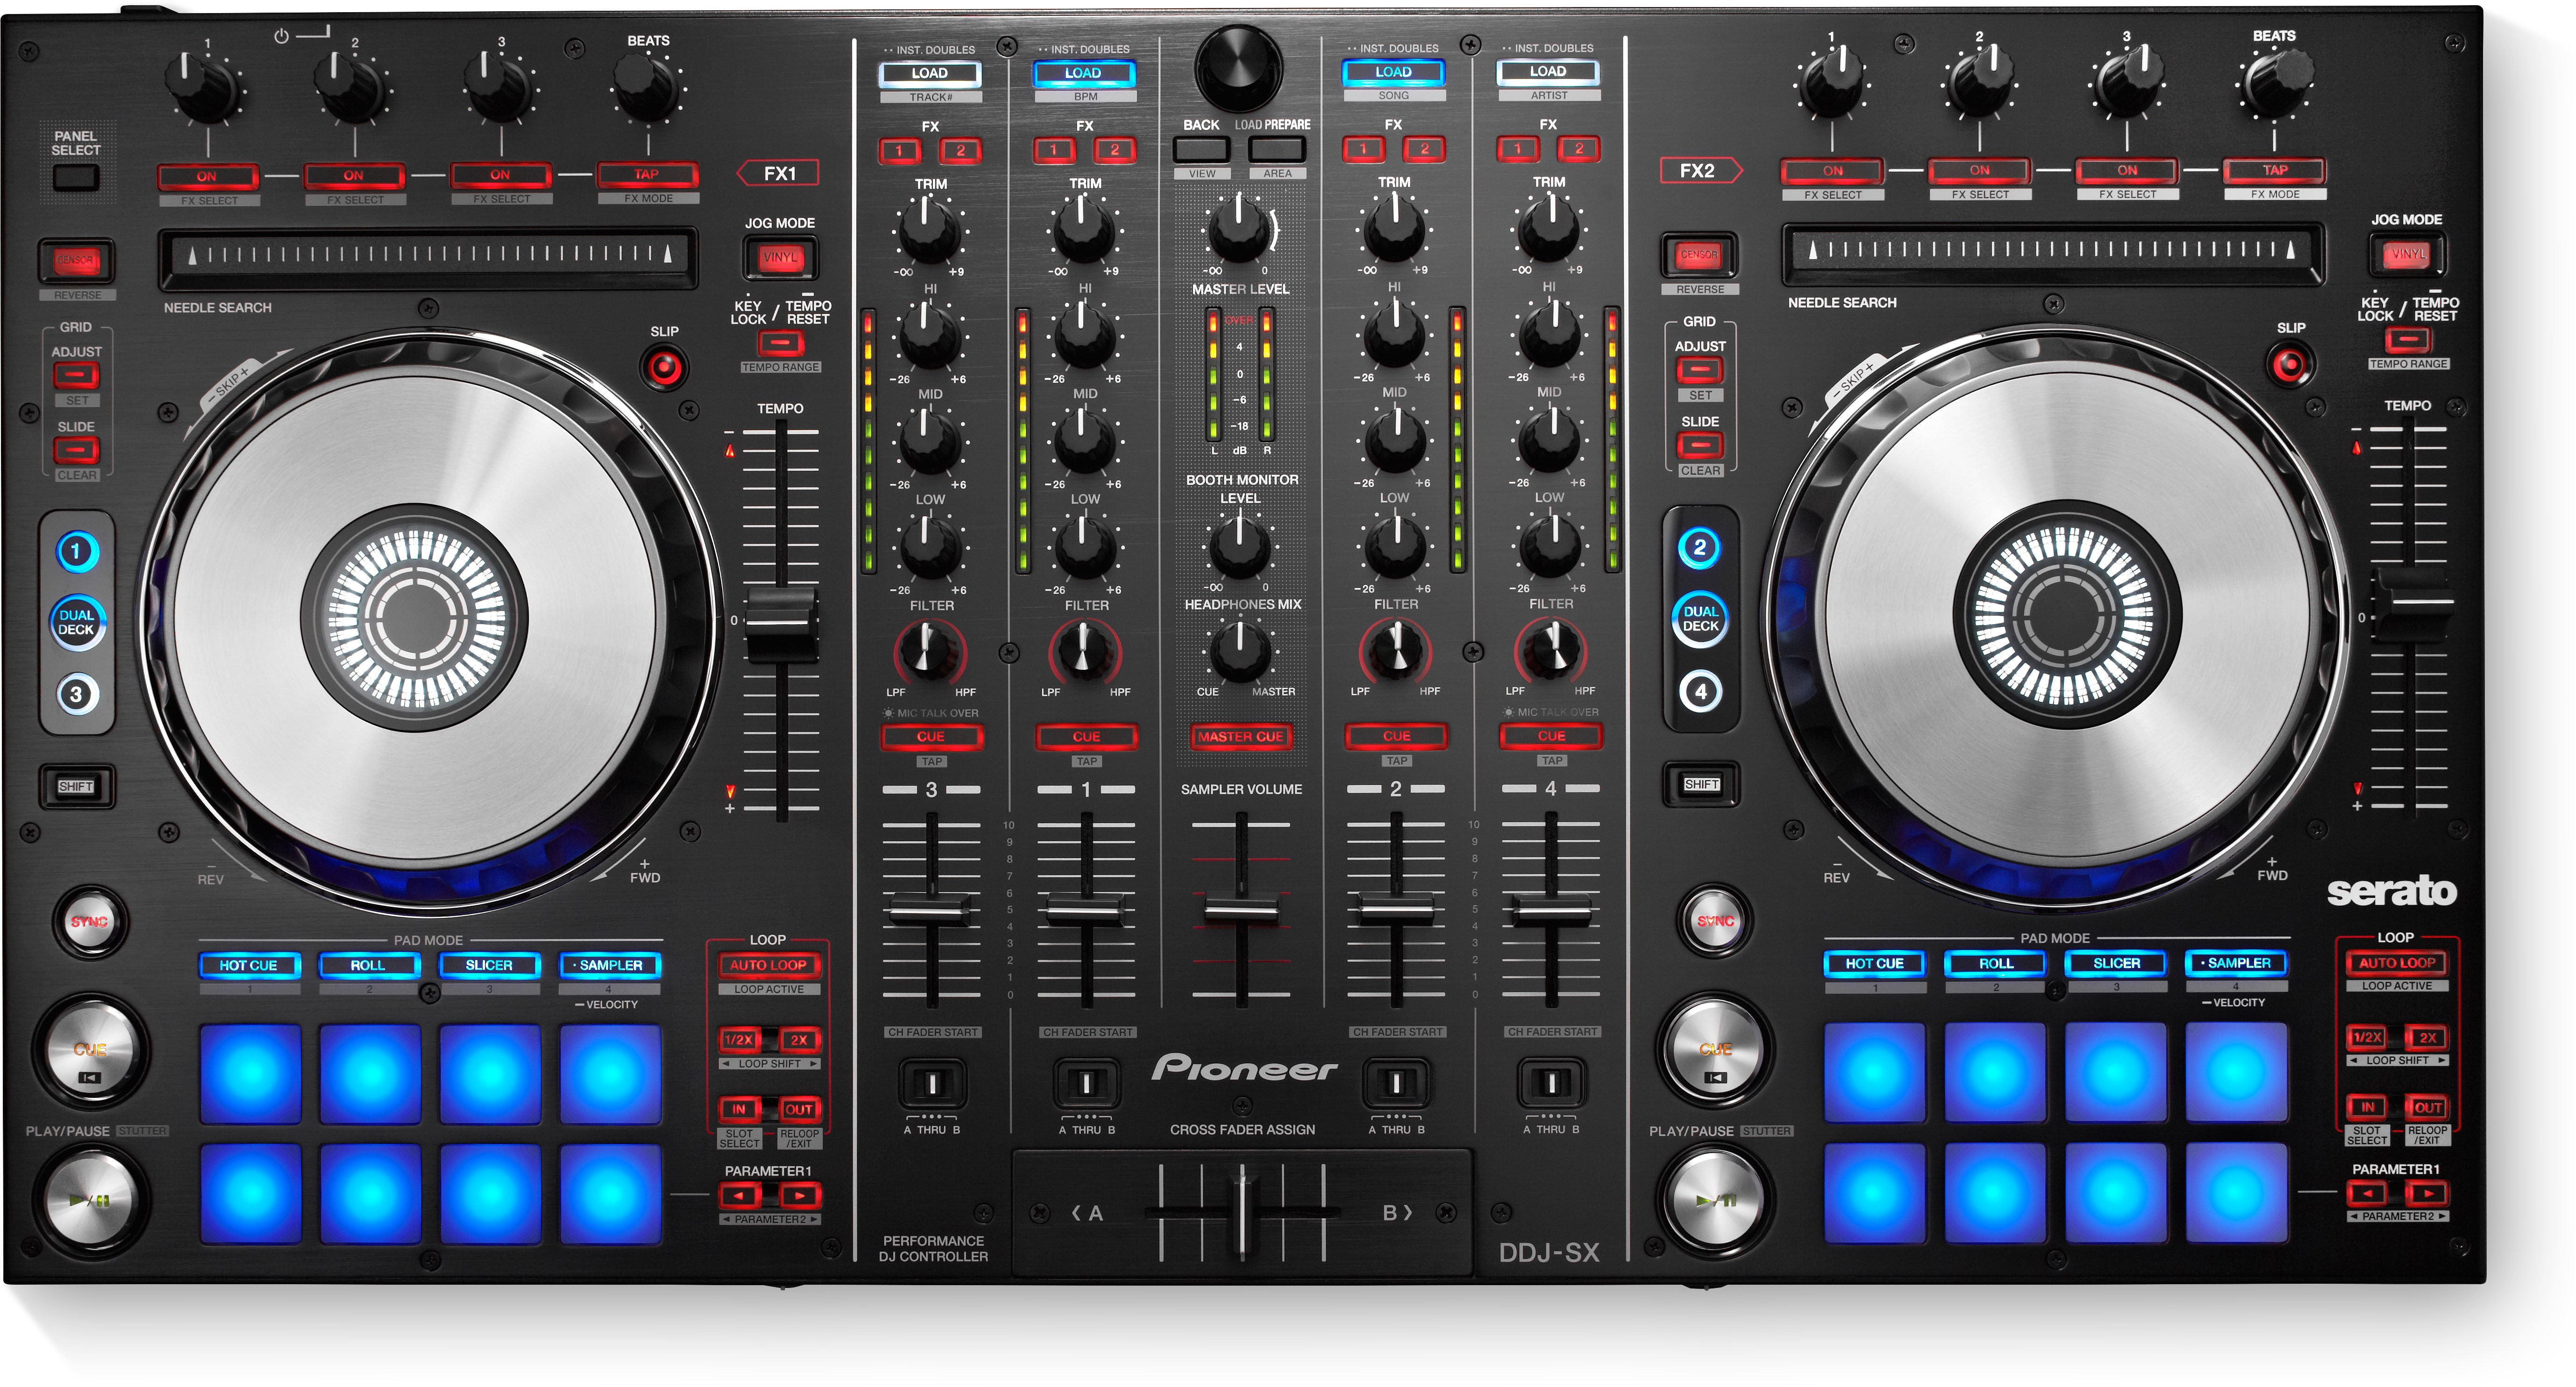 Download firmware or software for DDJ-SX - Pioneer DJ - Global